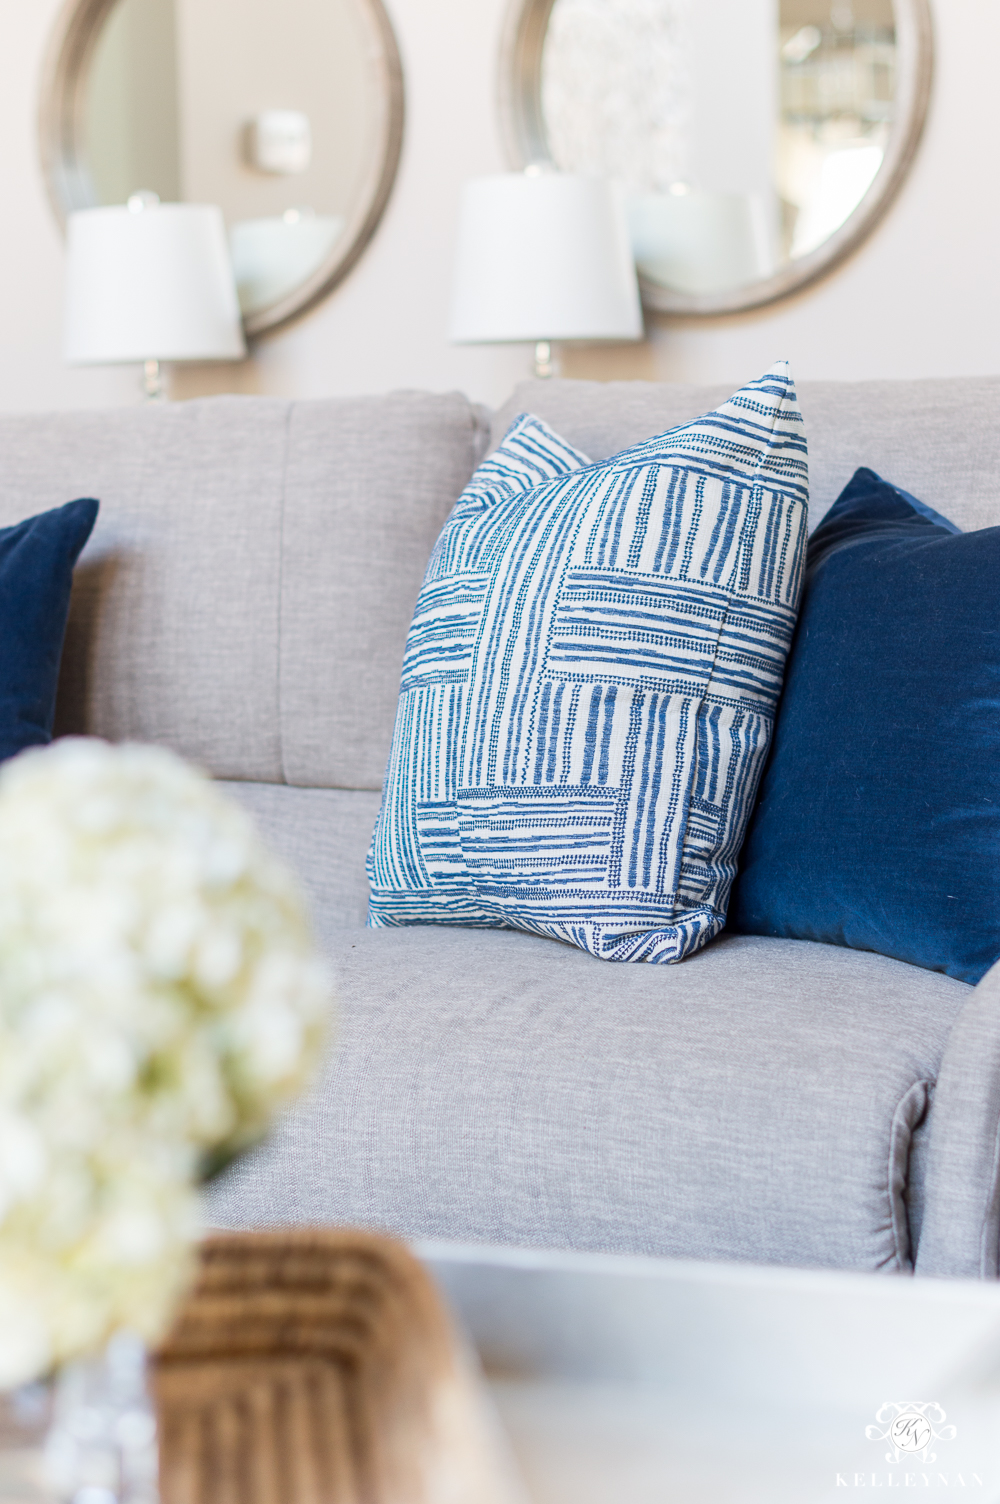 Blue and White Pillows on Sectional Sofa